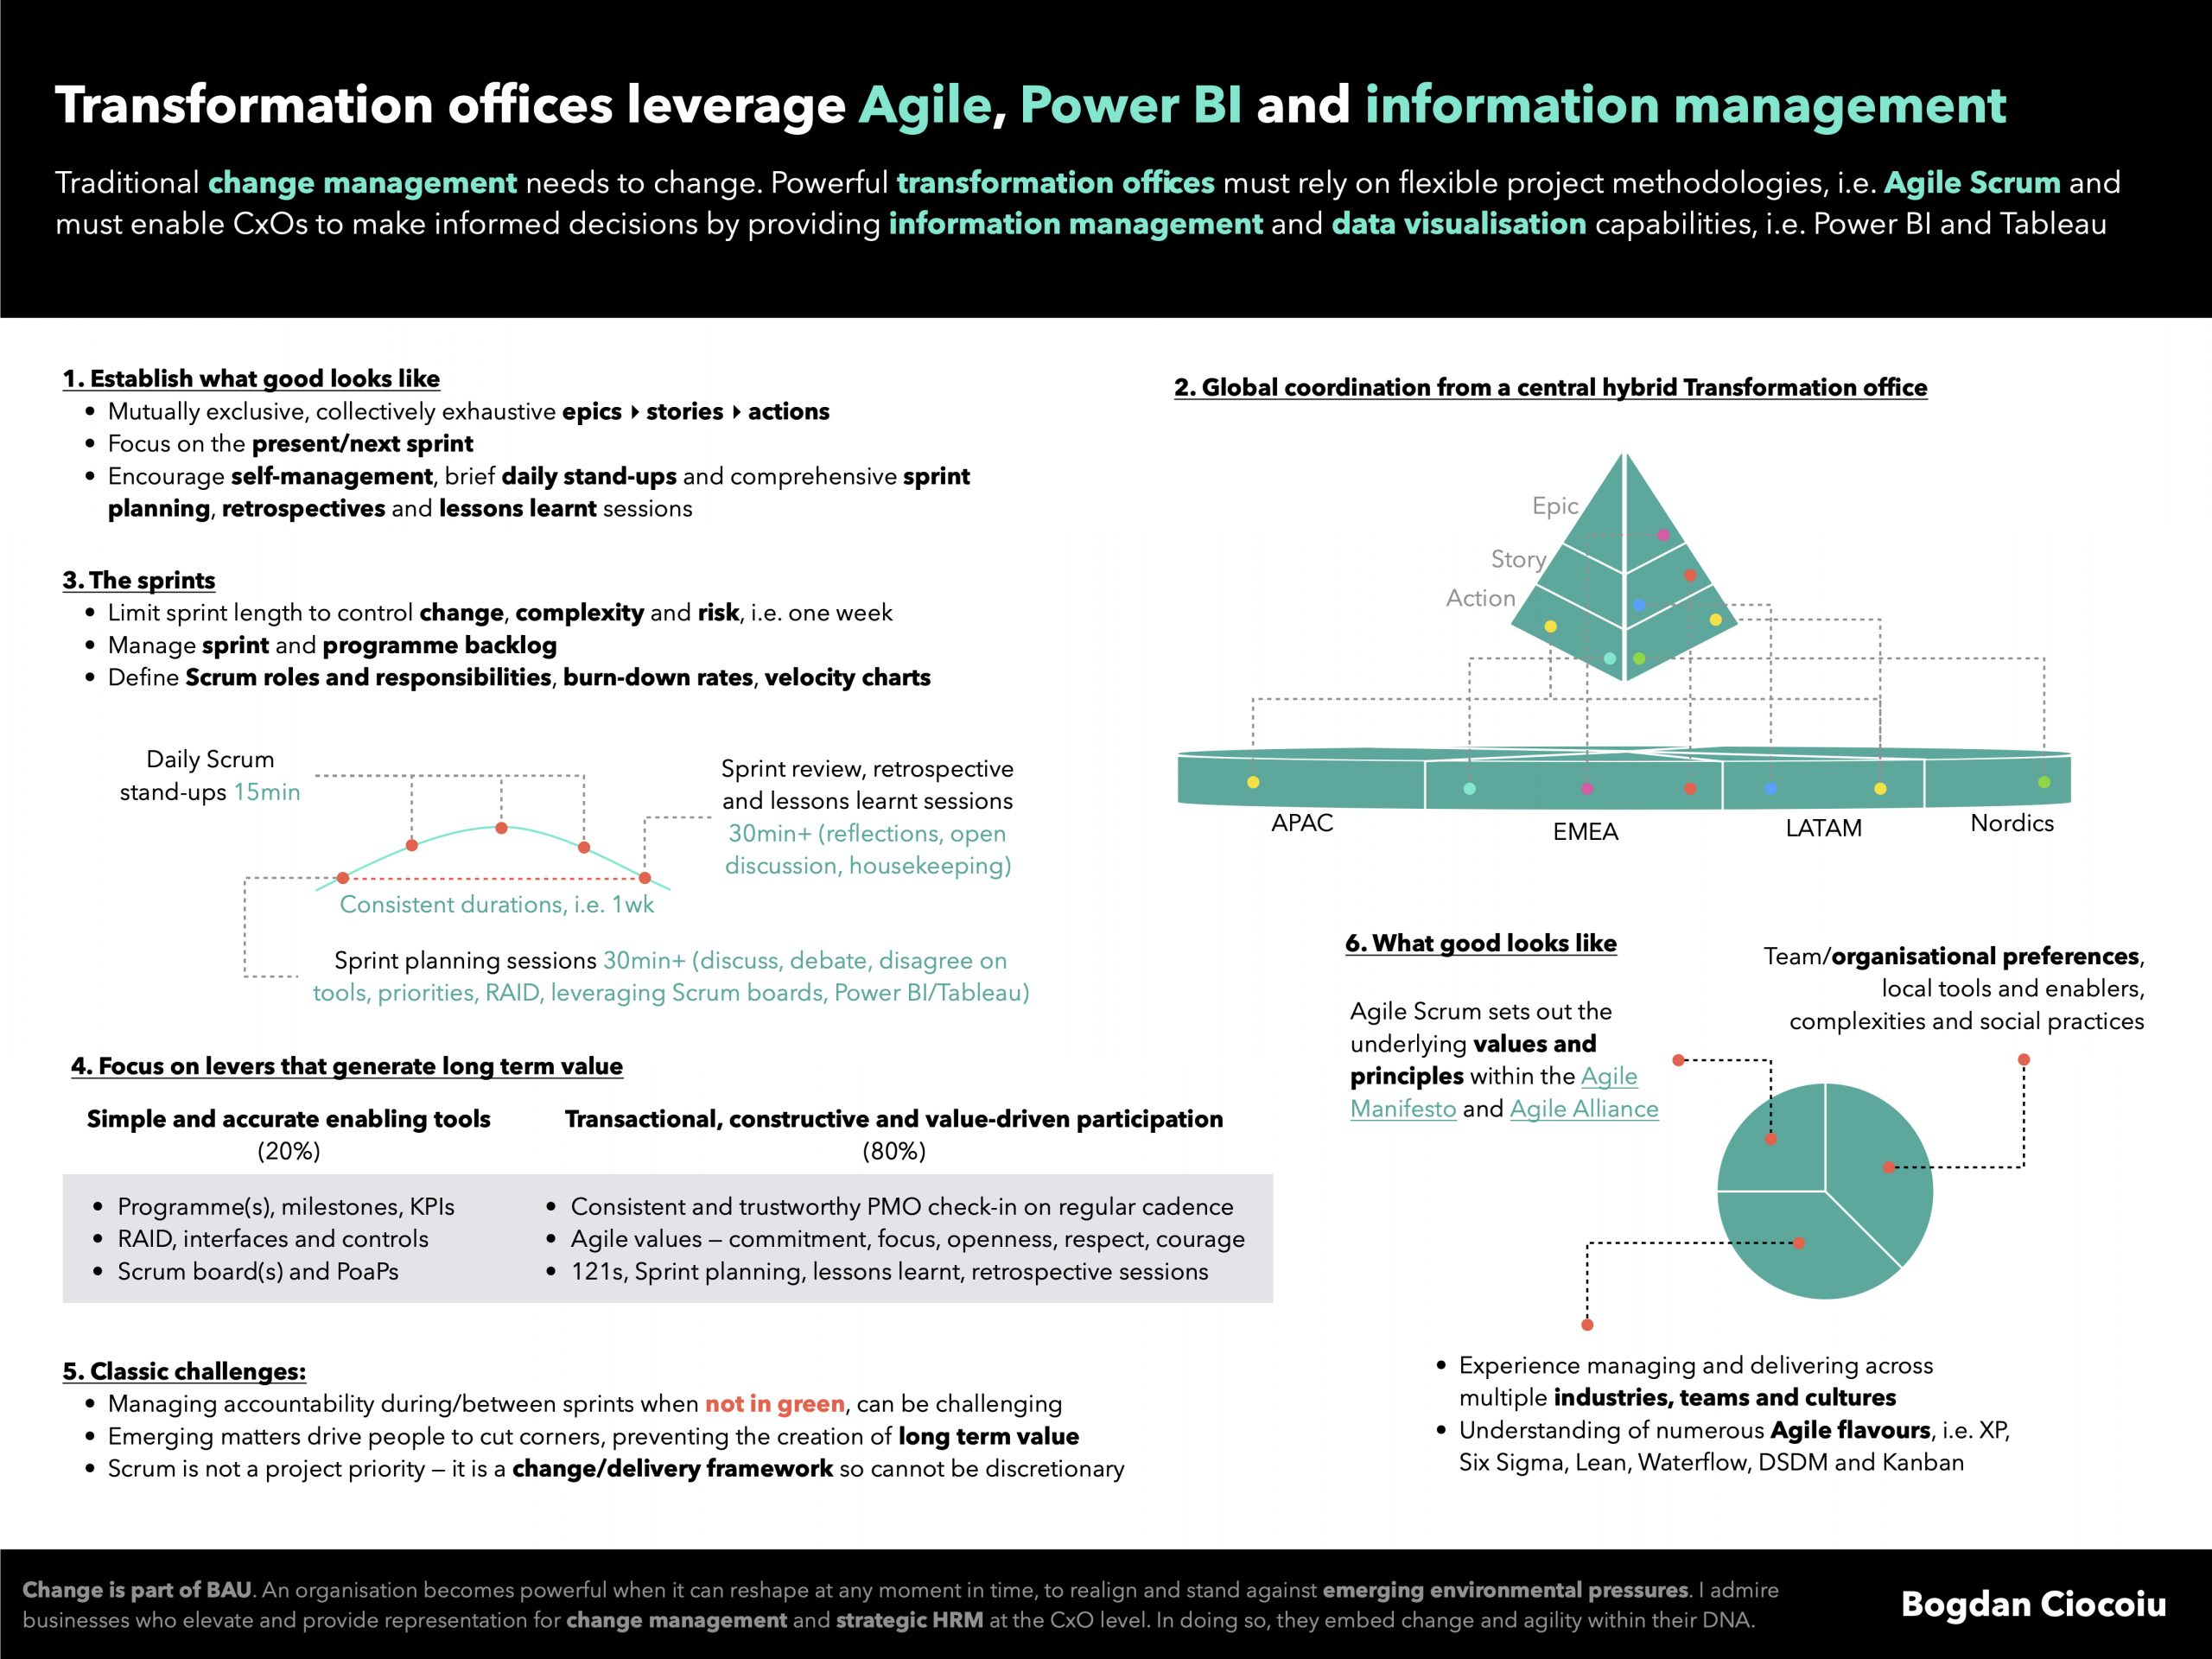 Transformation offices leverage Agile, Power BI and information management